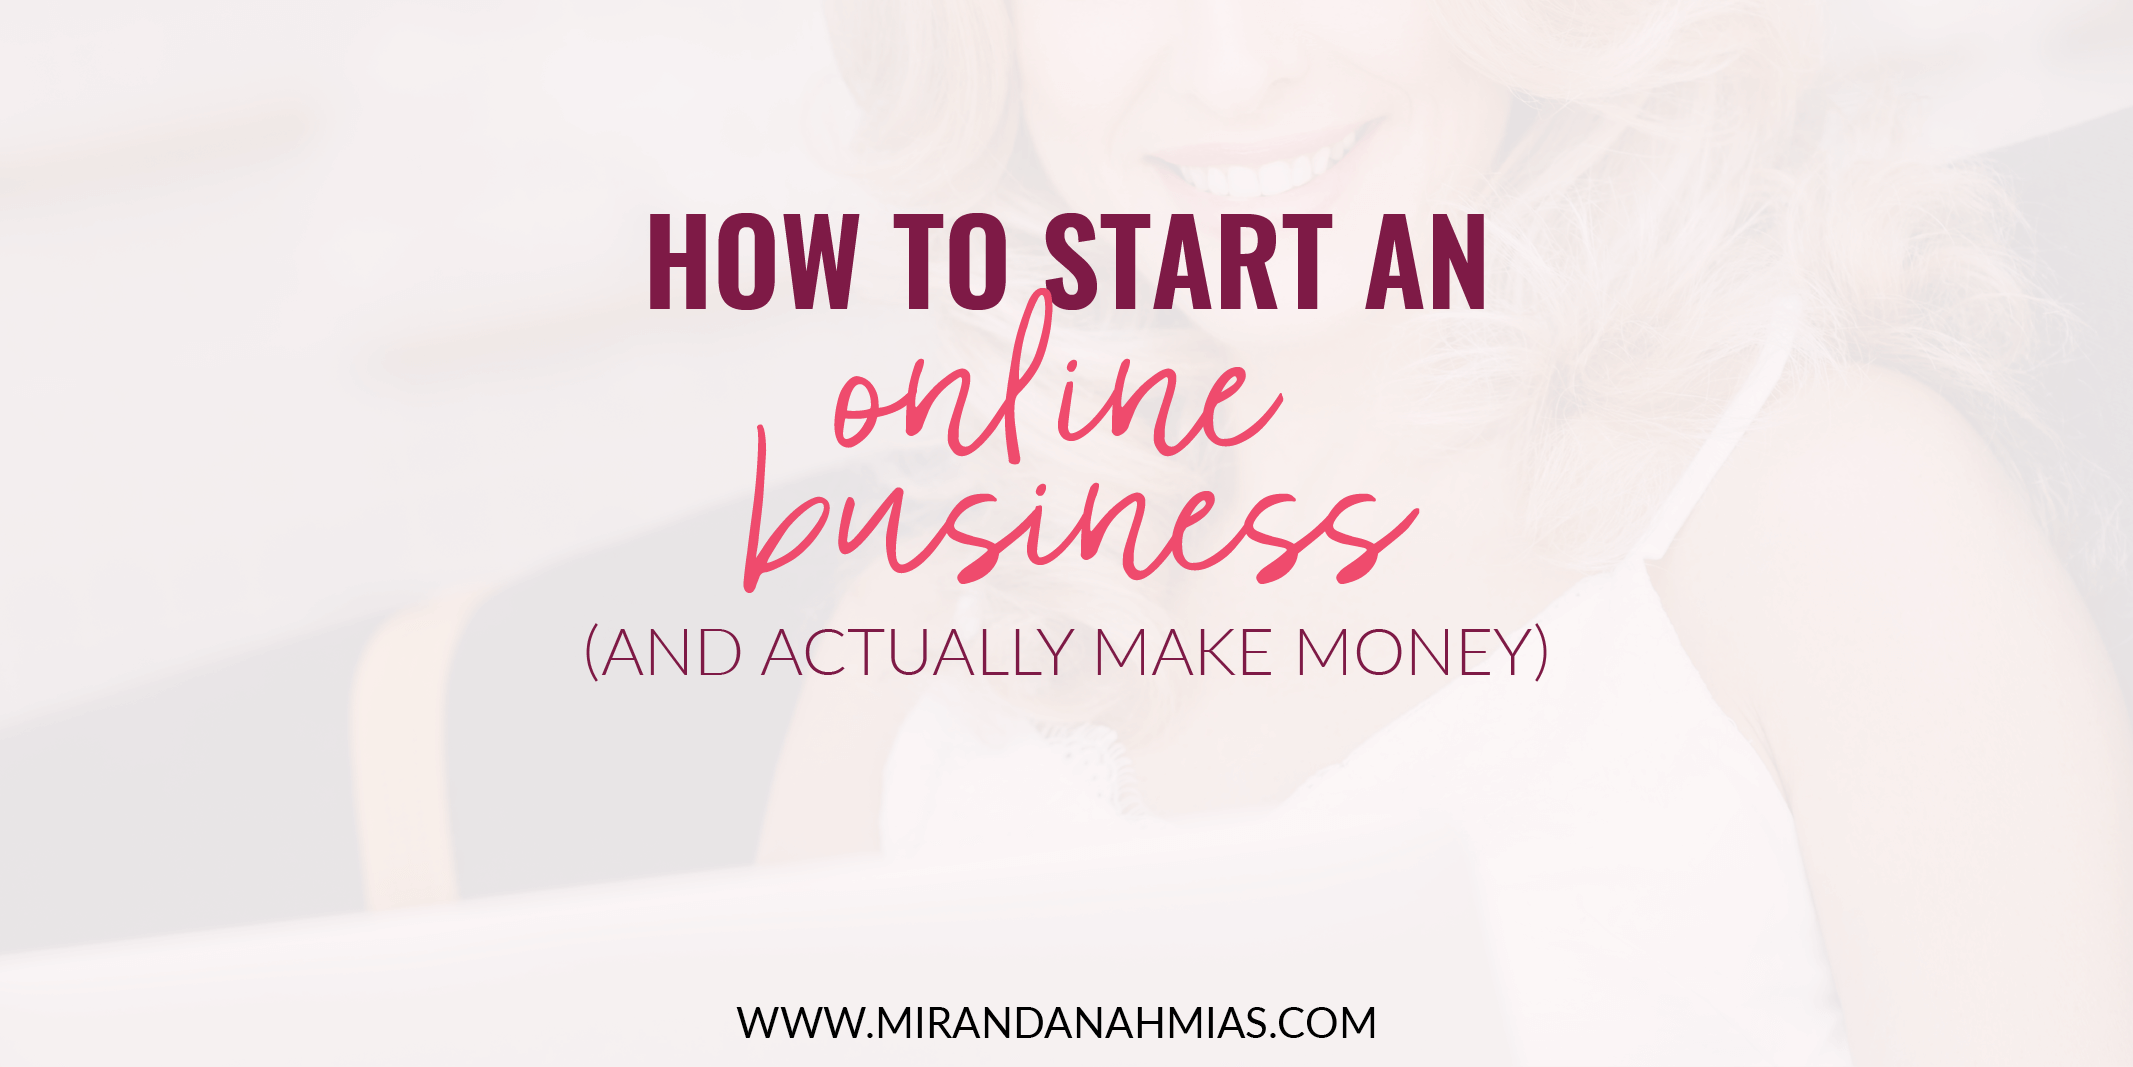 How To Start An Online Business (and Actually Make Money)